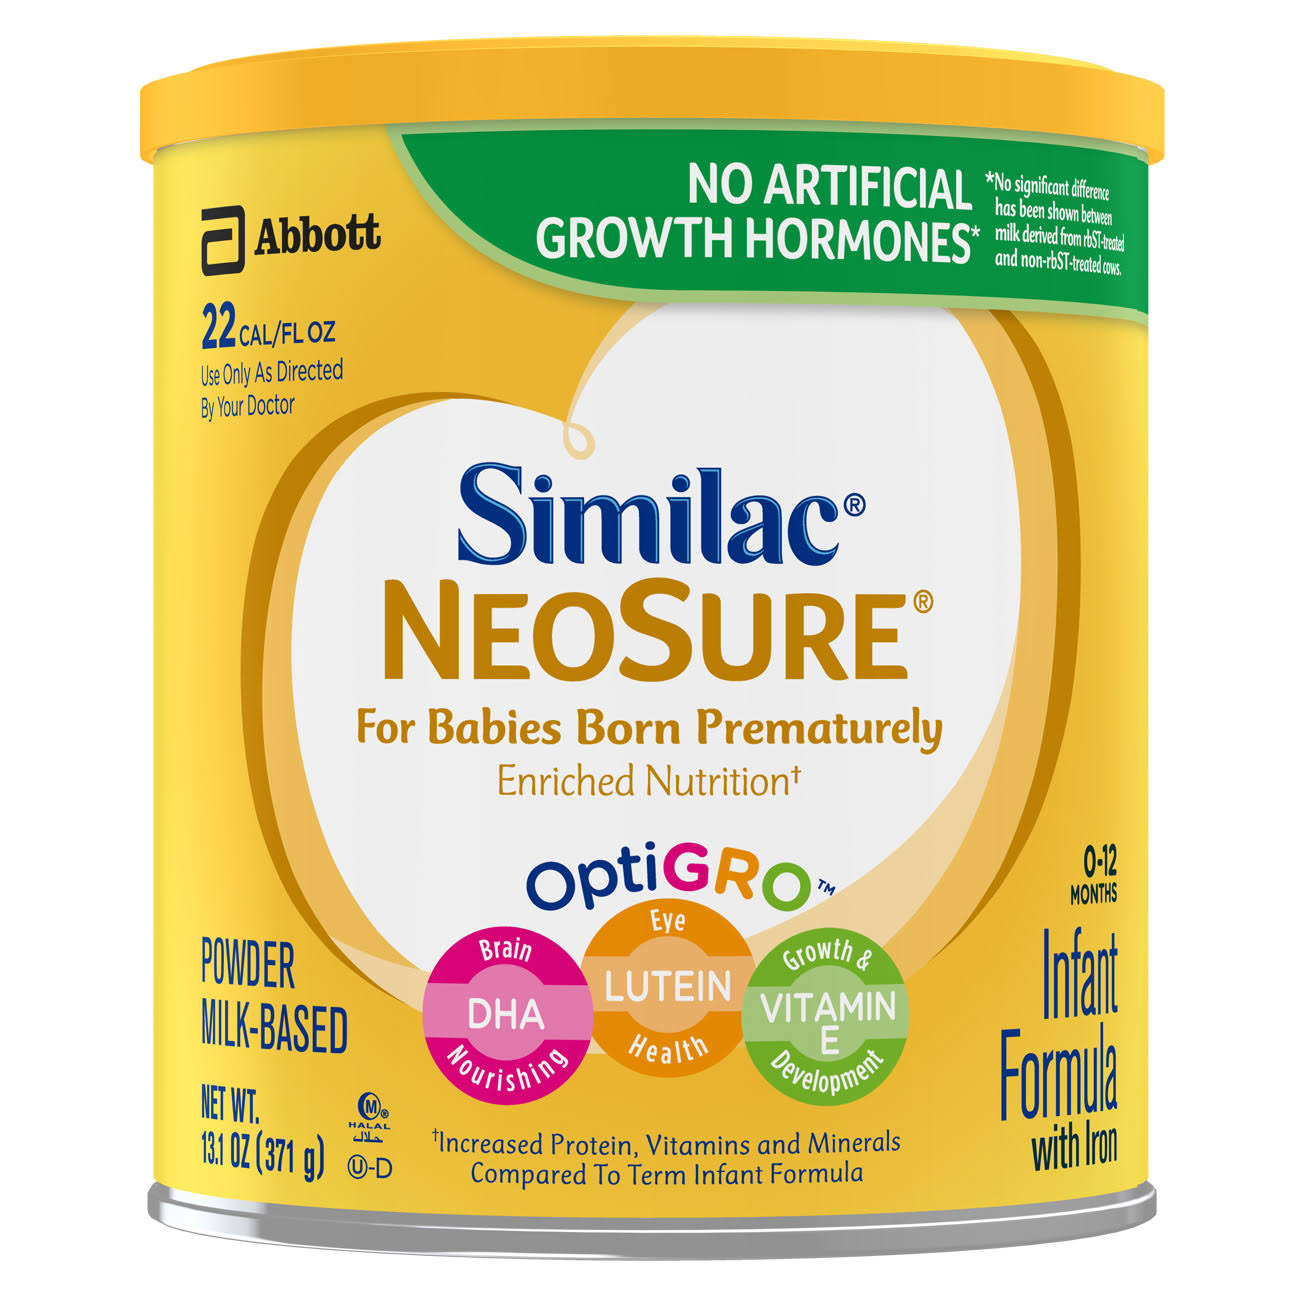 Abbott Similac NeoSure OptiGro Infant Formula Powder - 13.1oz